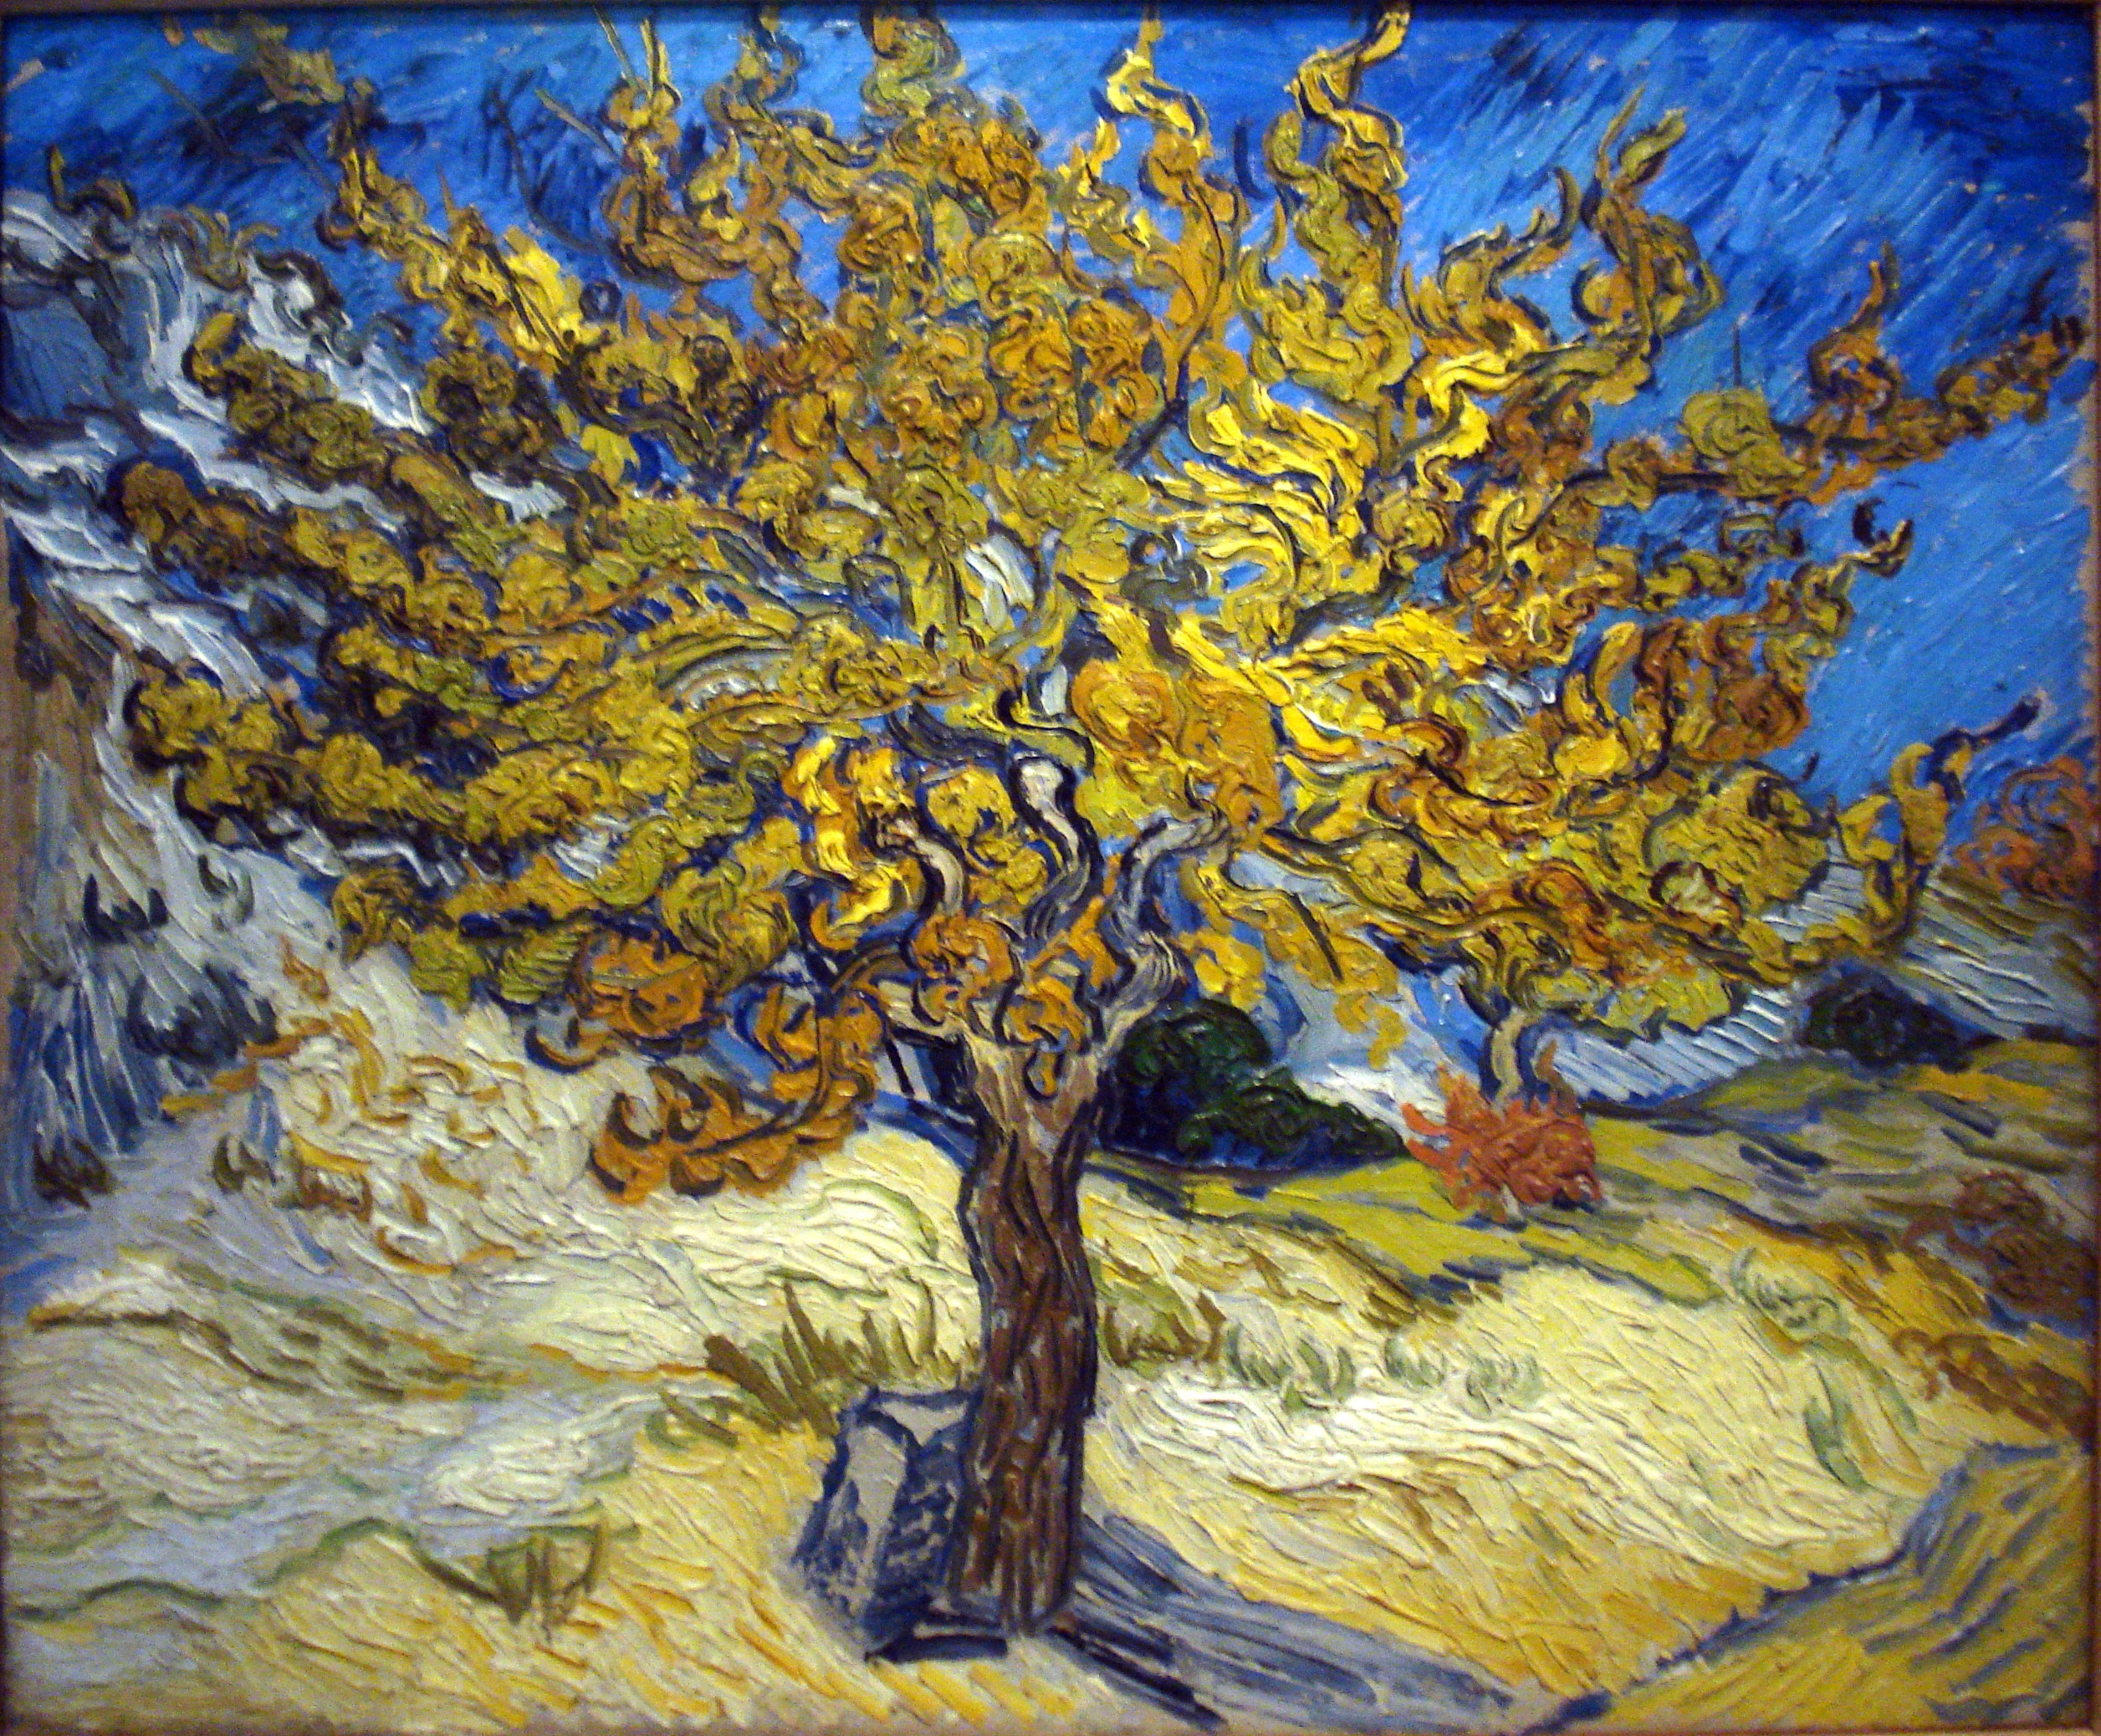 https://upload.wikimedia.org/wikipedia/commons/7/70/The_Mulberry_Tree_by_Vincent_van_Gogh.jpg